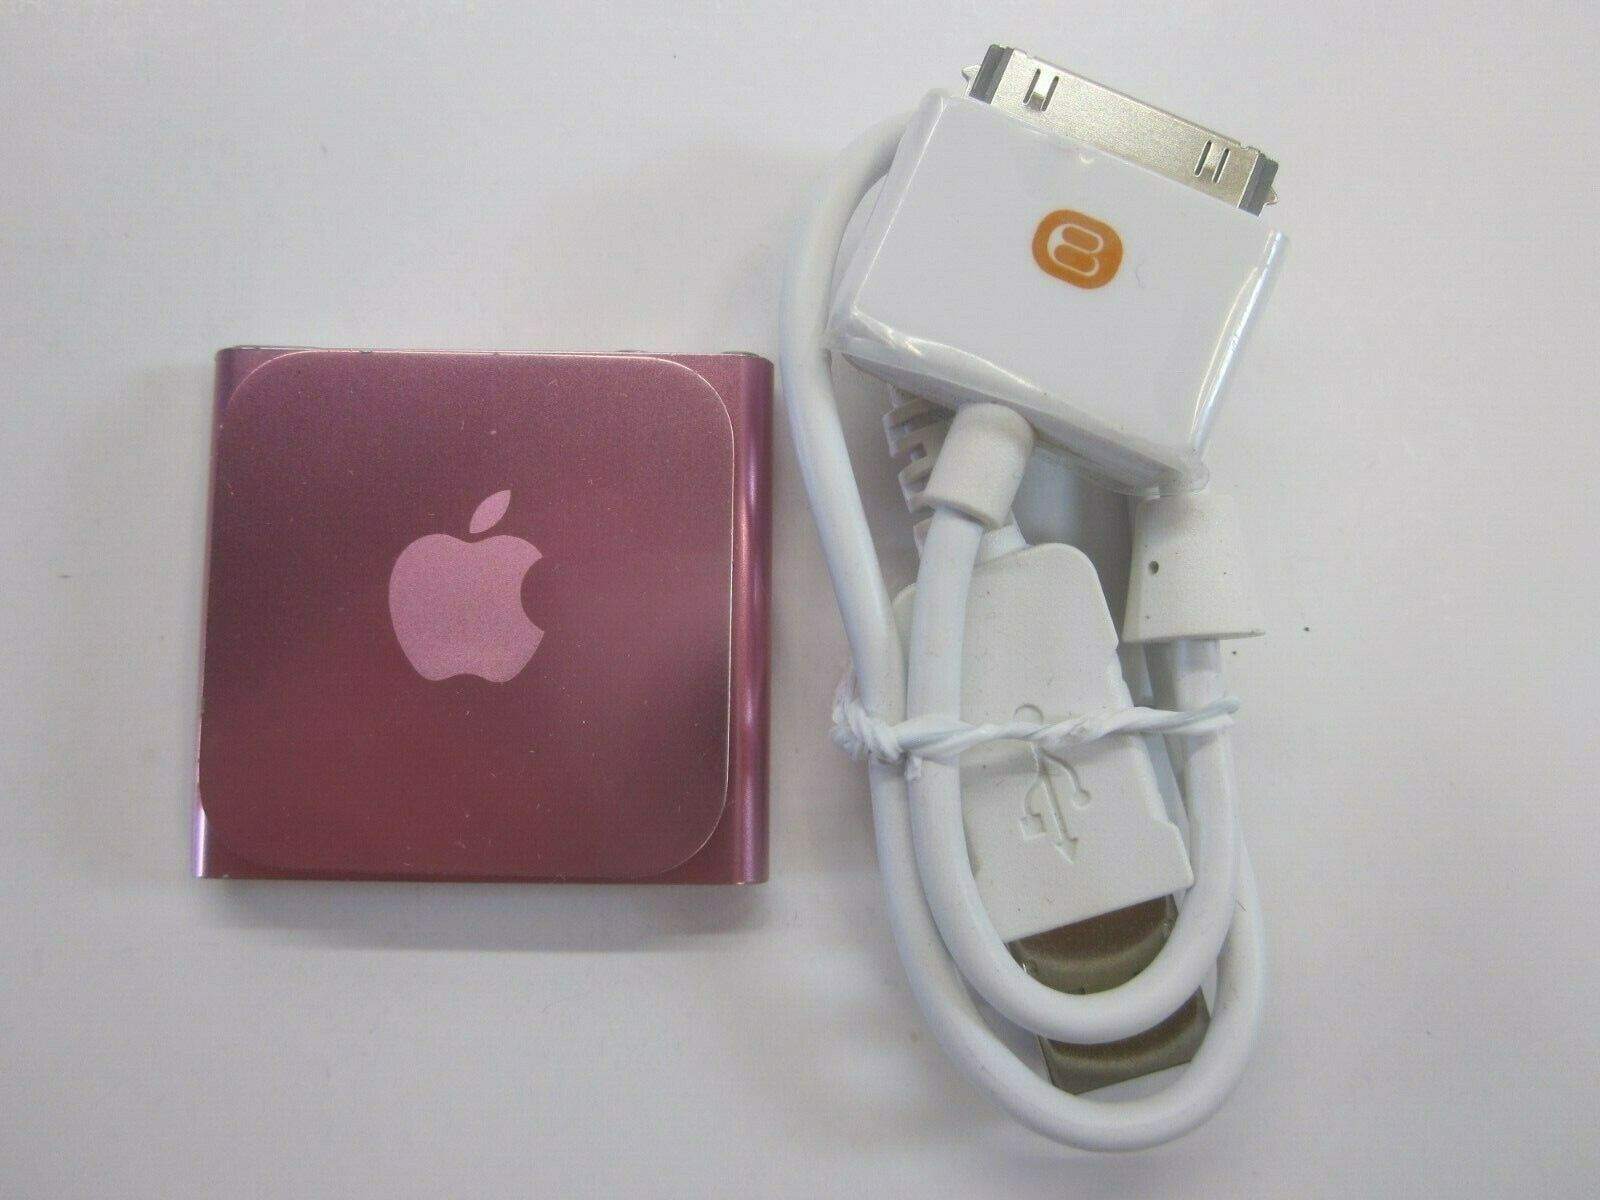 ::Apple iPod nano 6th Generation Pink (8 GB)